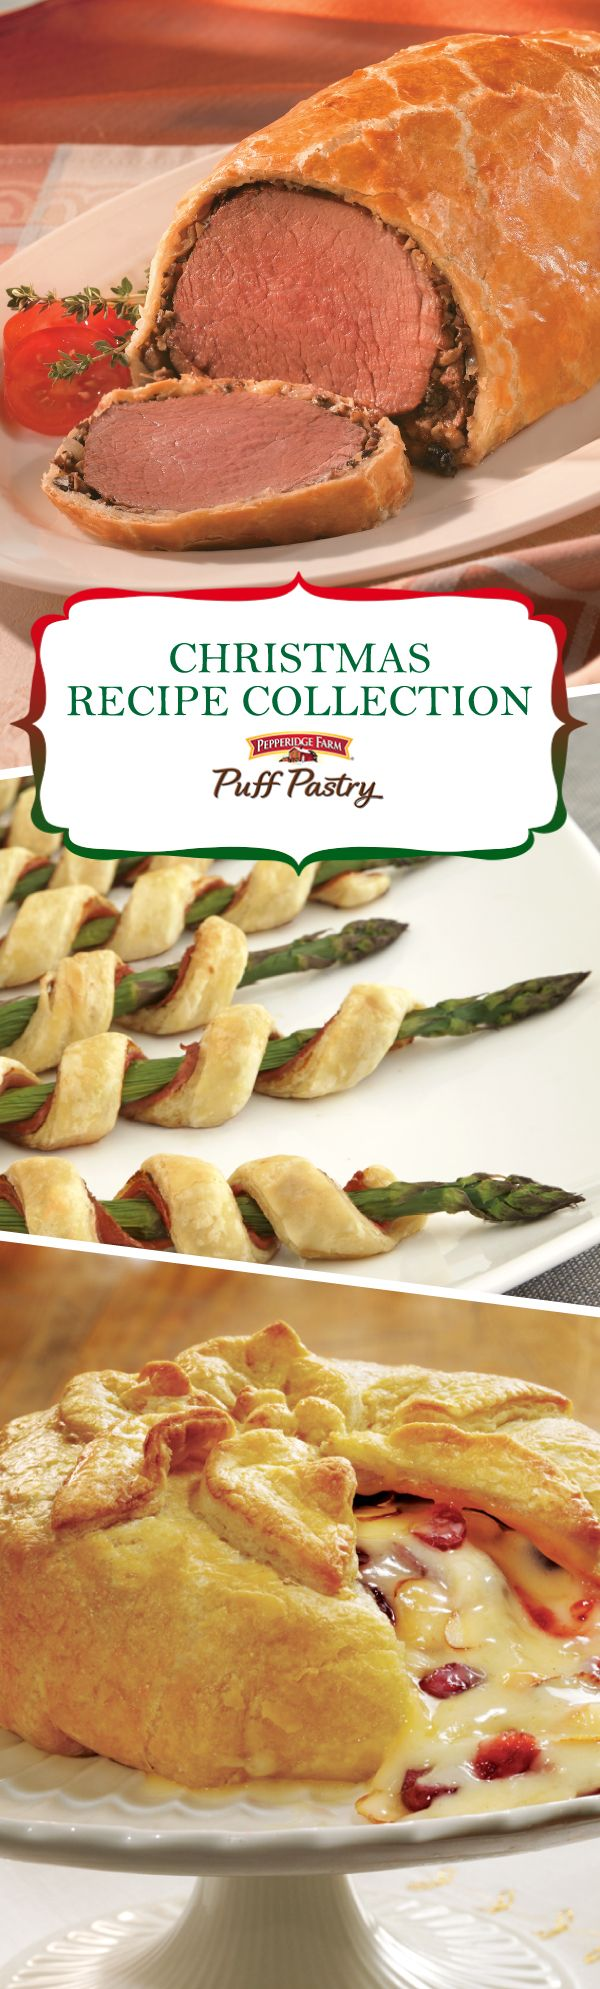 Pepperidge Farm Puff Pastry Christmas Recipe Collection. Celebrate the holiday season with these favorite dishes. From appetizers to main dishes and desserts, this collection has everything you need for hosting friends and family. Serve cocktails with Brie en Croute and Asparagus Prosciutto spirals, make an elegant dinner with Beef Wellington or bring a special dessert to the office potluck. Make Christmas extra merry and bright with some lovingly baked treats.